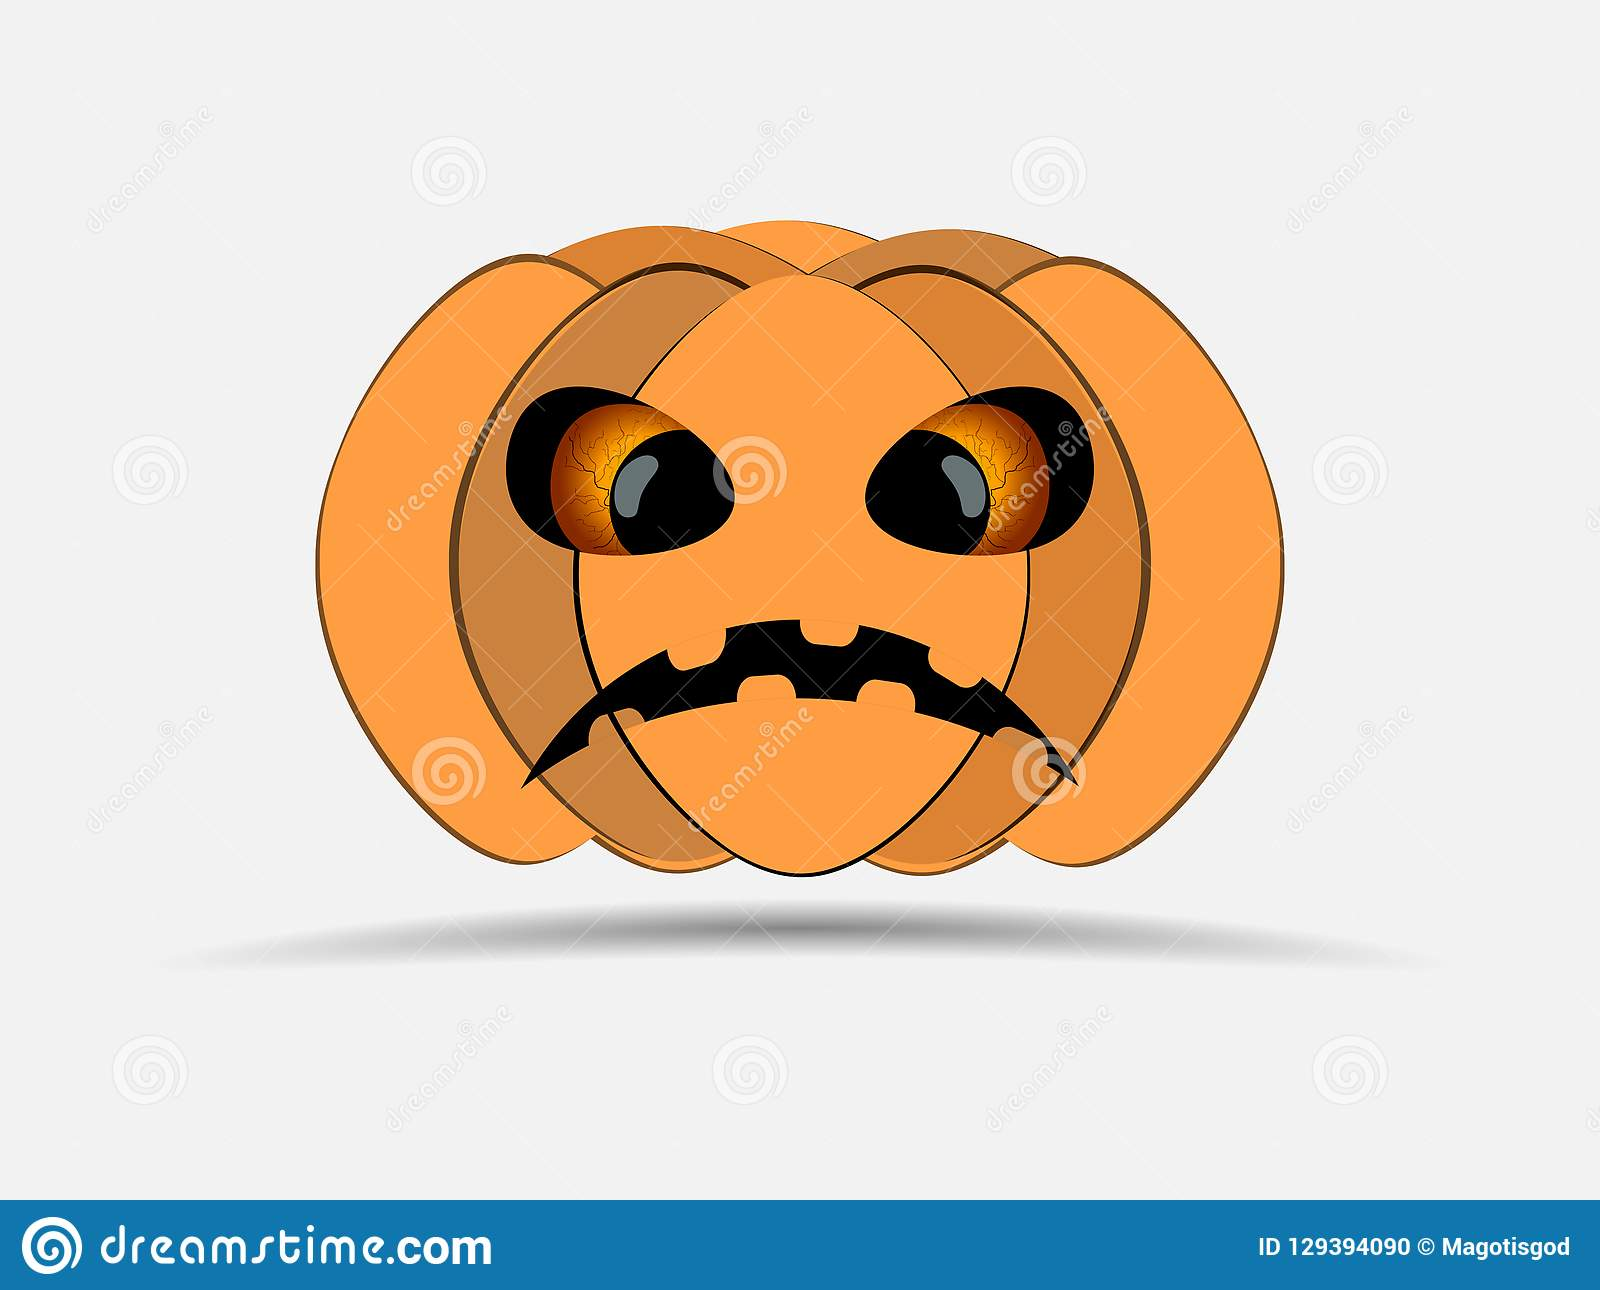 Happy Halloween. Pumpkin isolated on white background. Jack o lantern icon. Vector